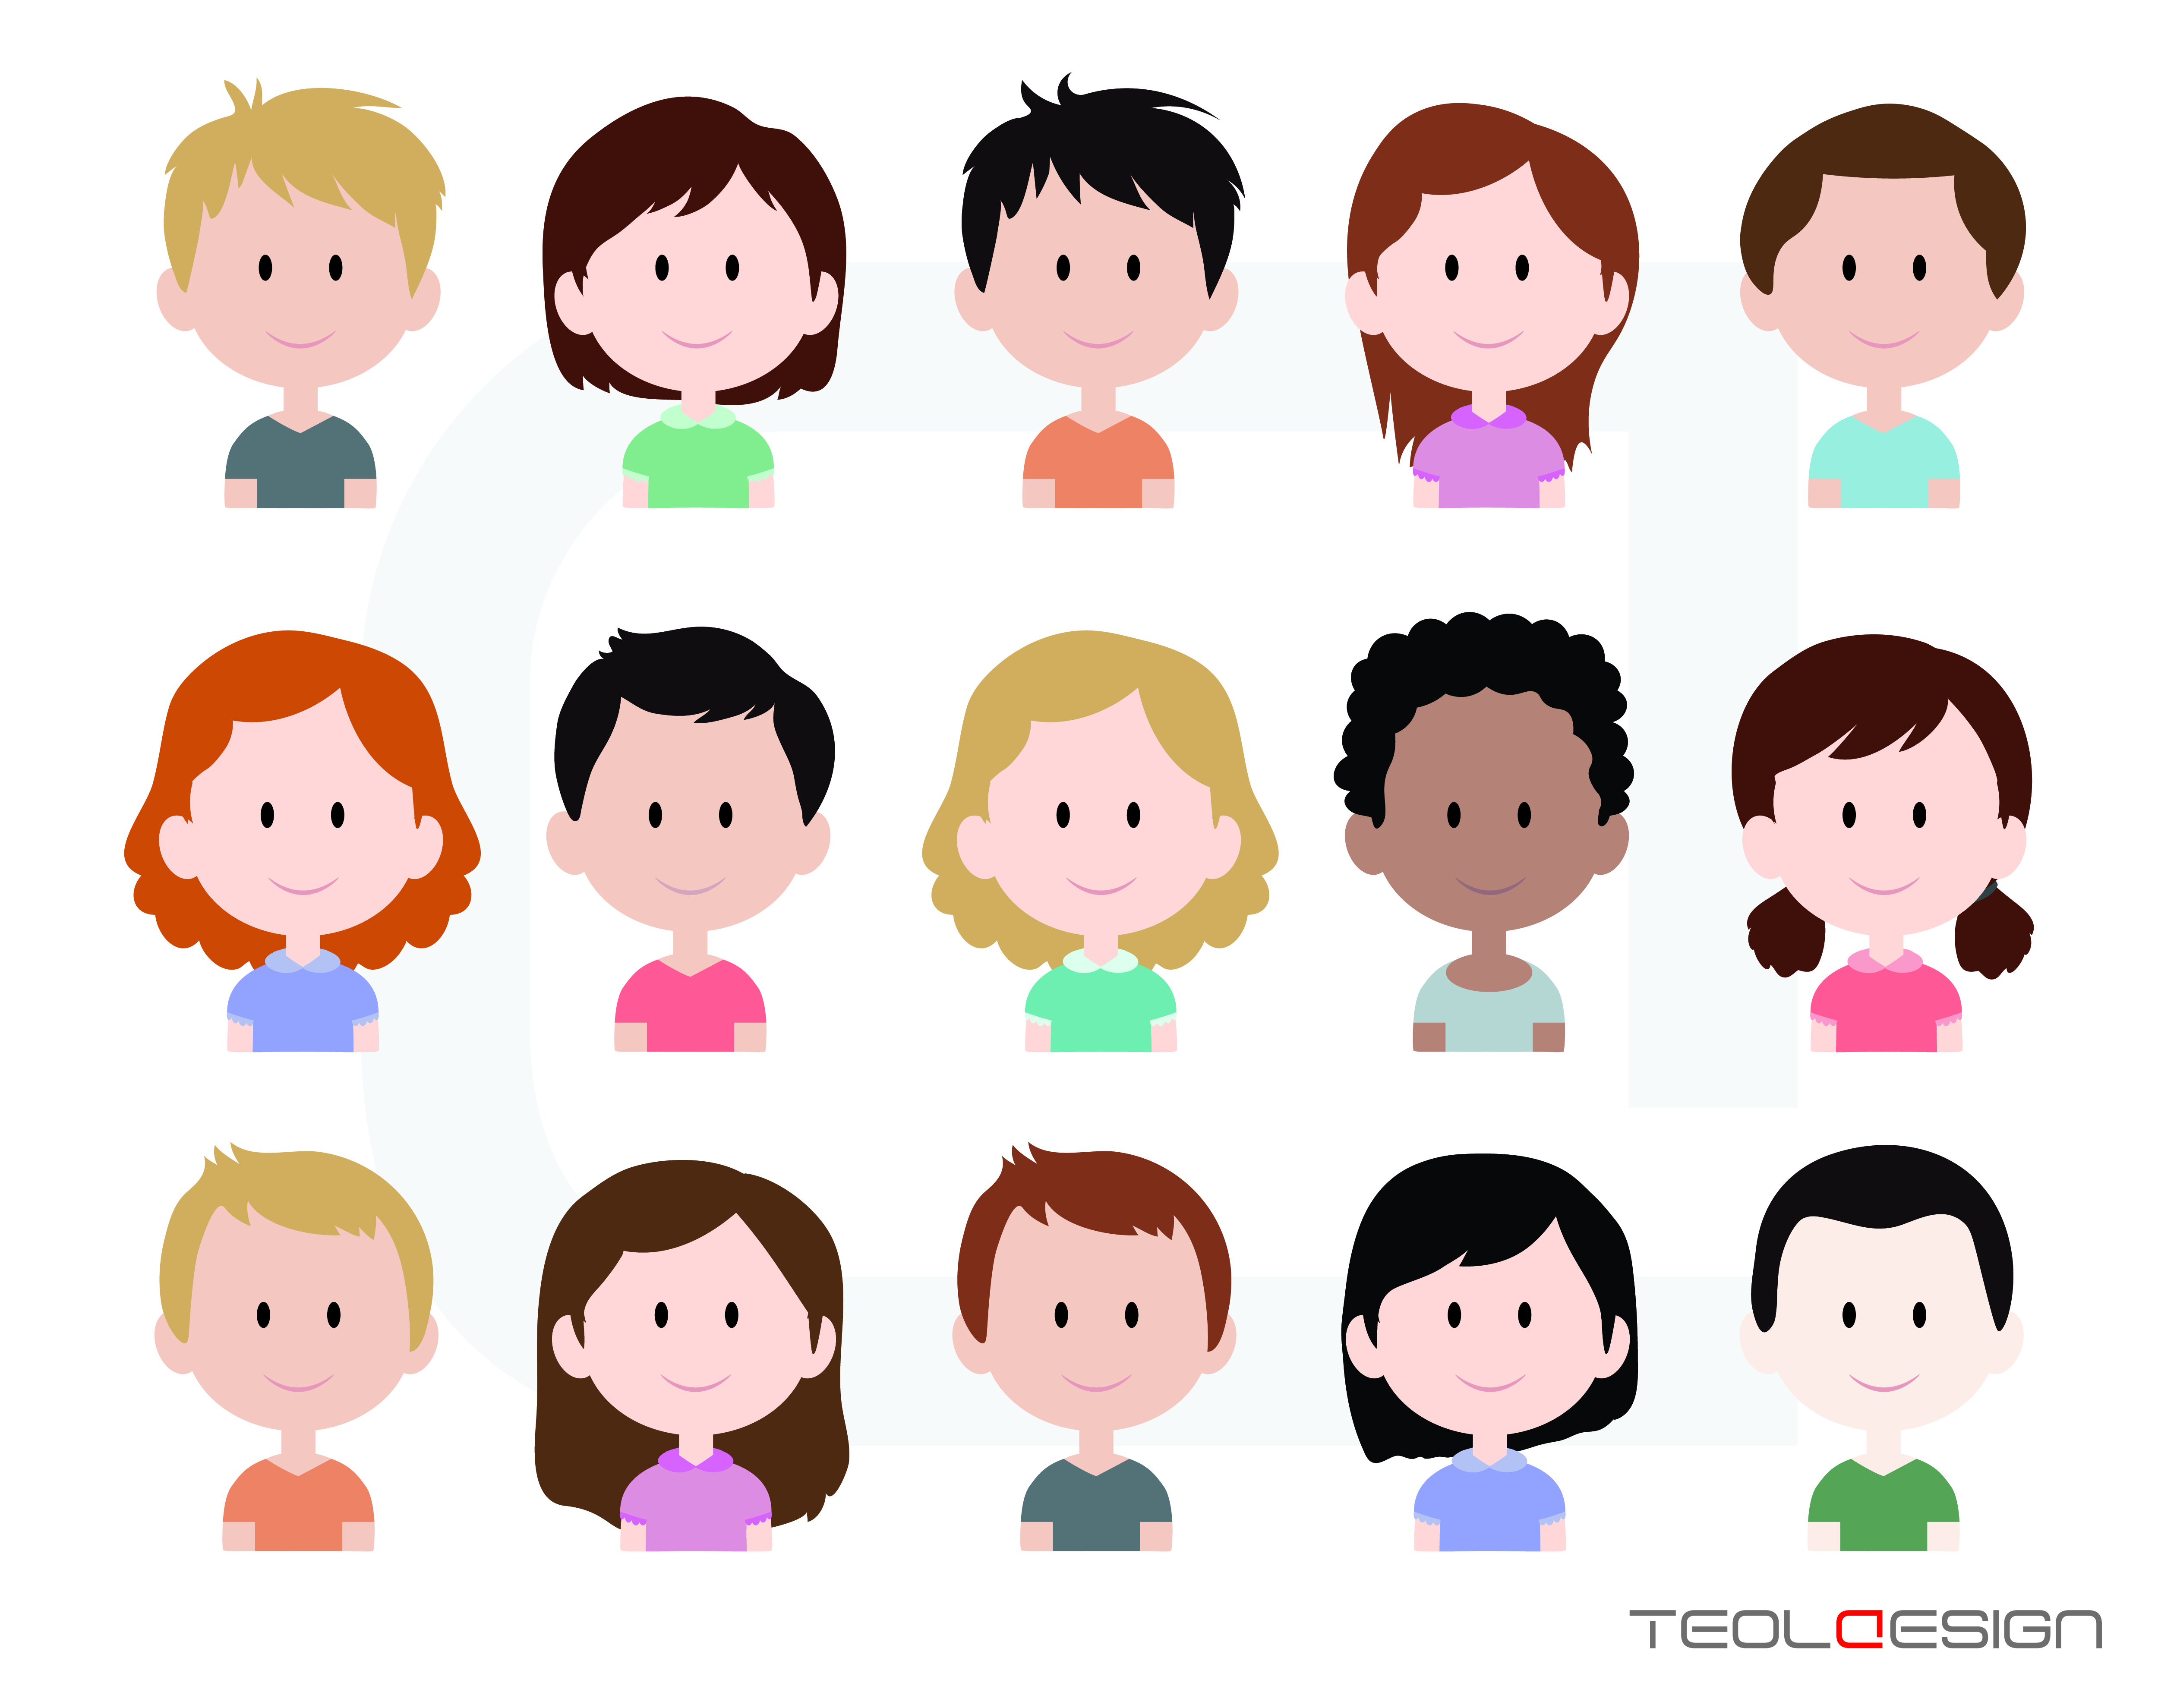 Child faces clipart clipart freeuse library Child Face Clipart | Free download best Child Face Clipart on ... clipart freeuse library